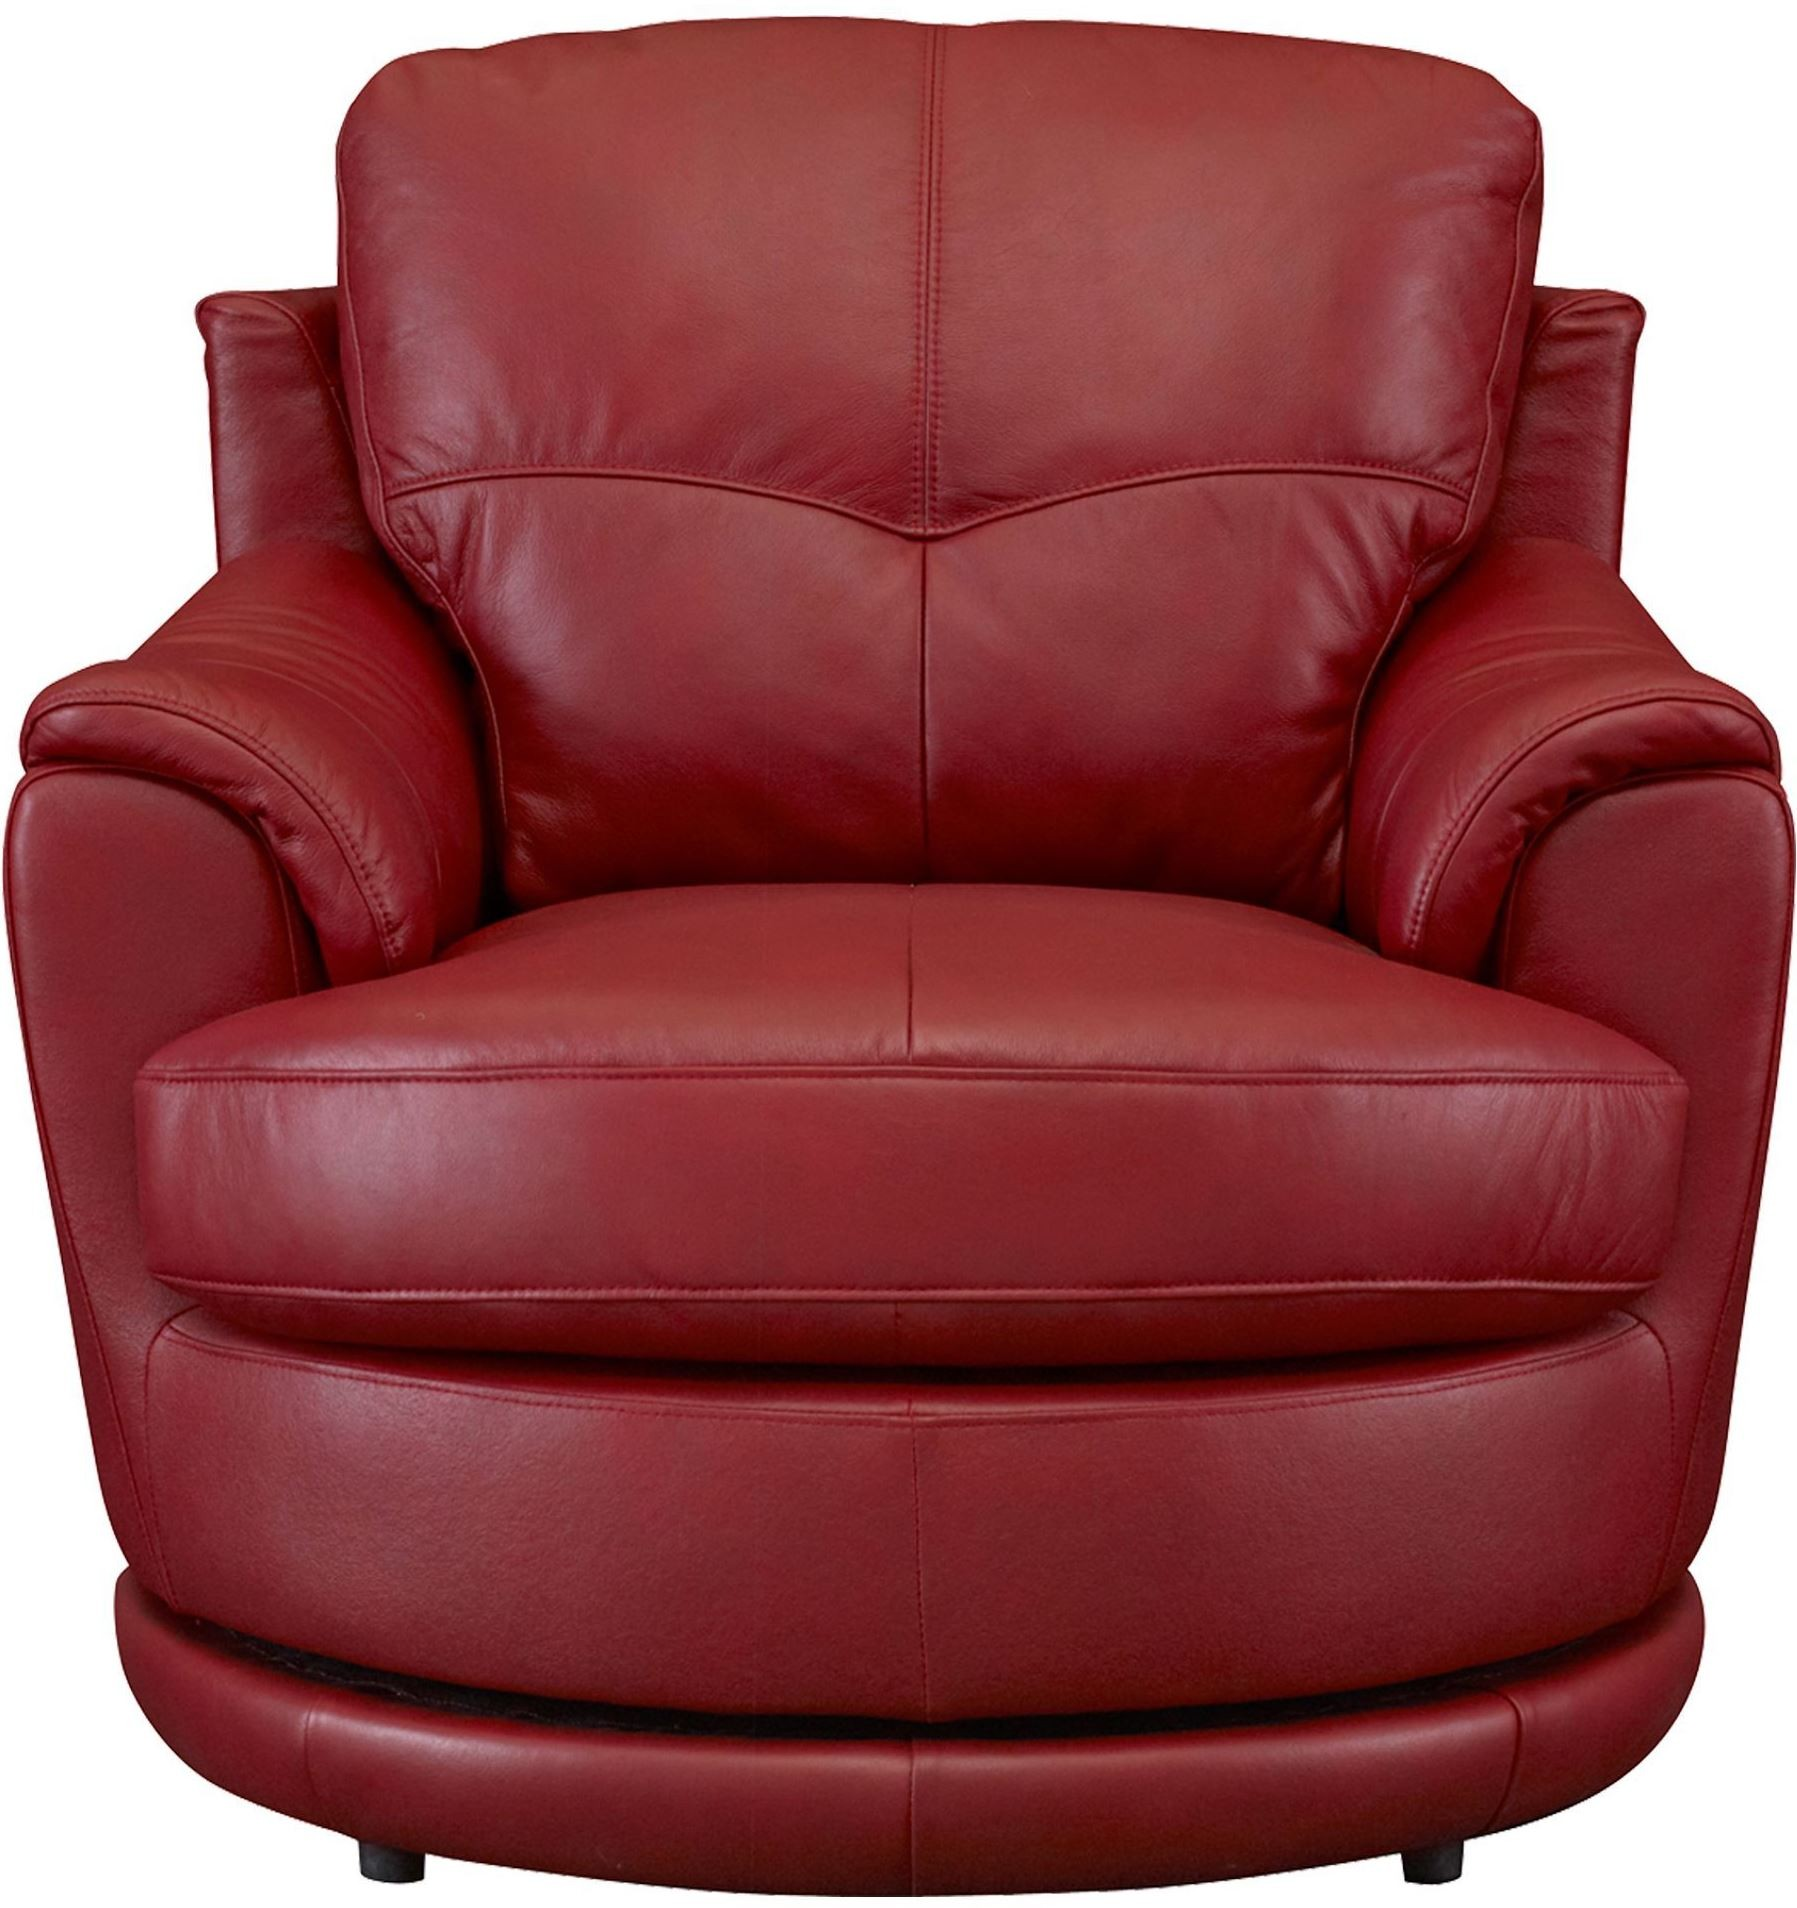 Red Swivel Chair Globe Red Swivel Chair From Leather Italia 1444 M1073